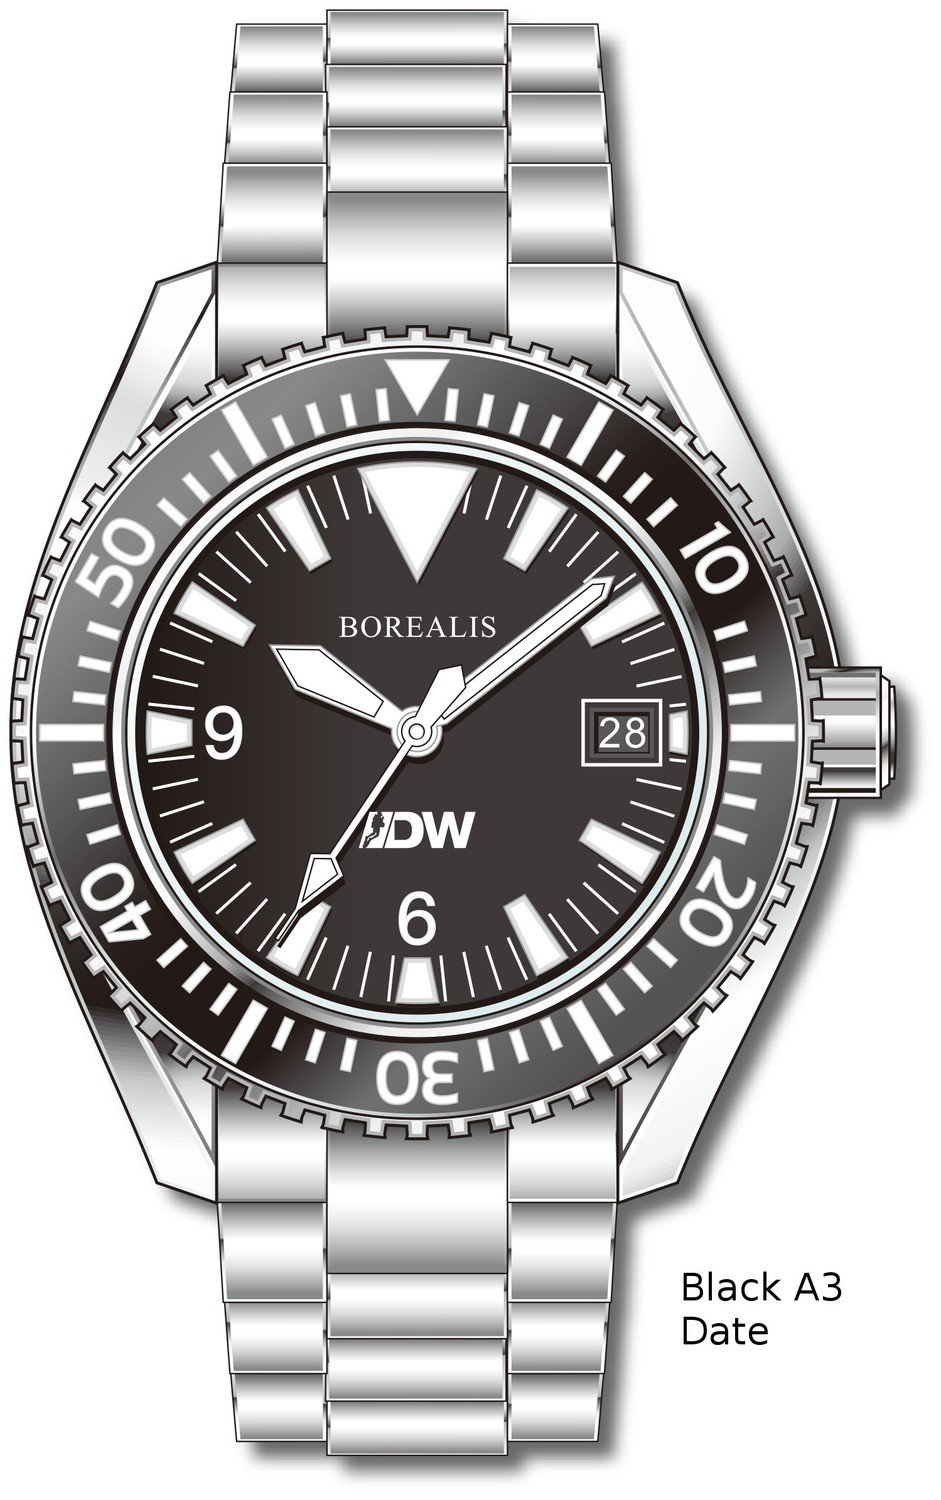 Pre-Order Borealis Estoril 300 for Diver's Watches Facebook Group Black Dial Big Triangle Date Black A3